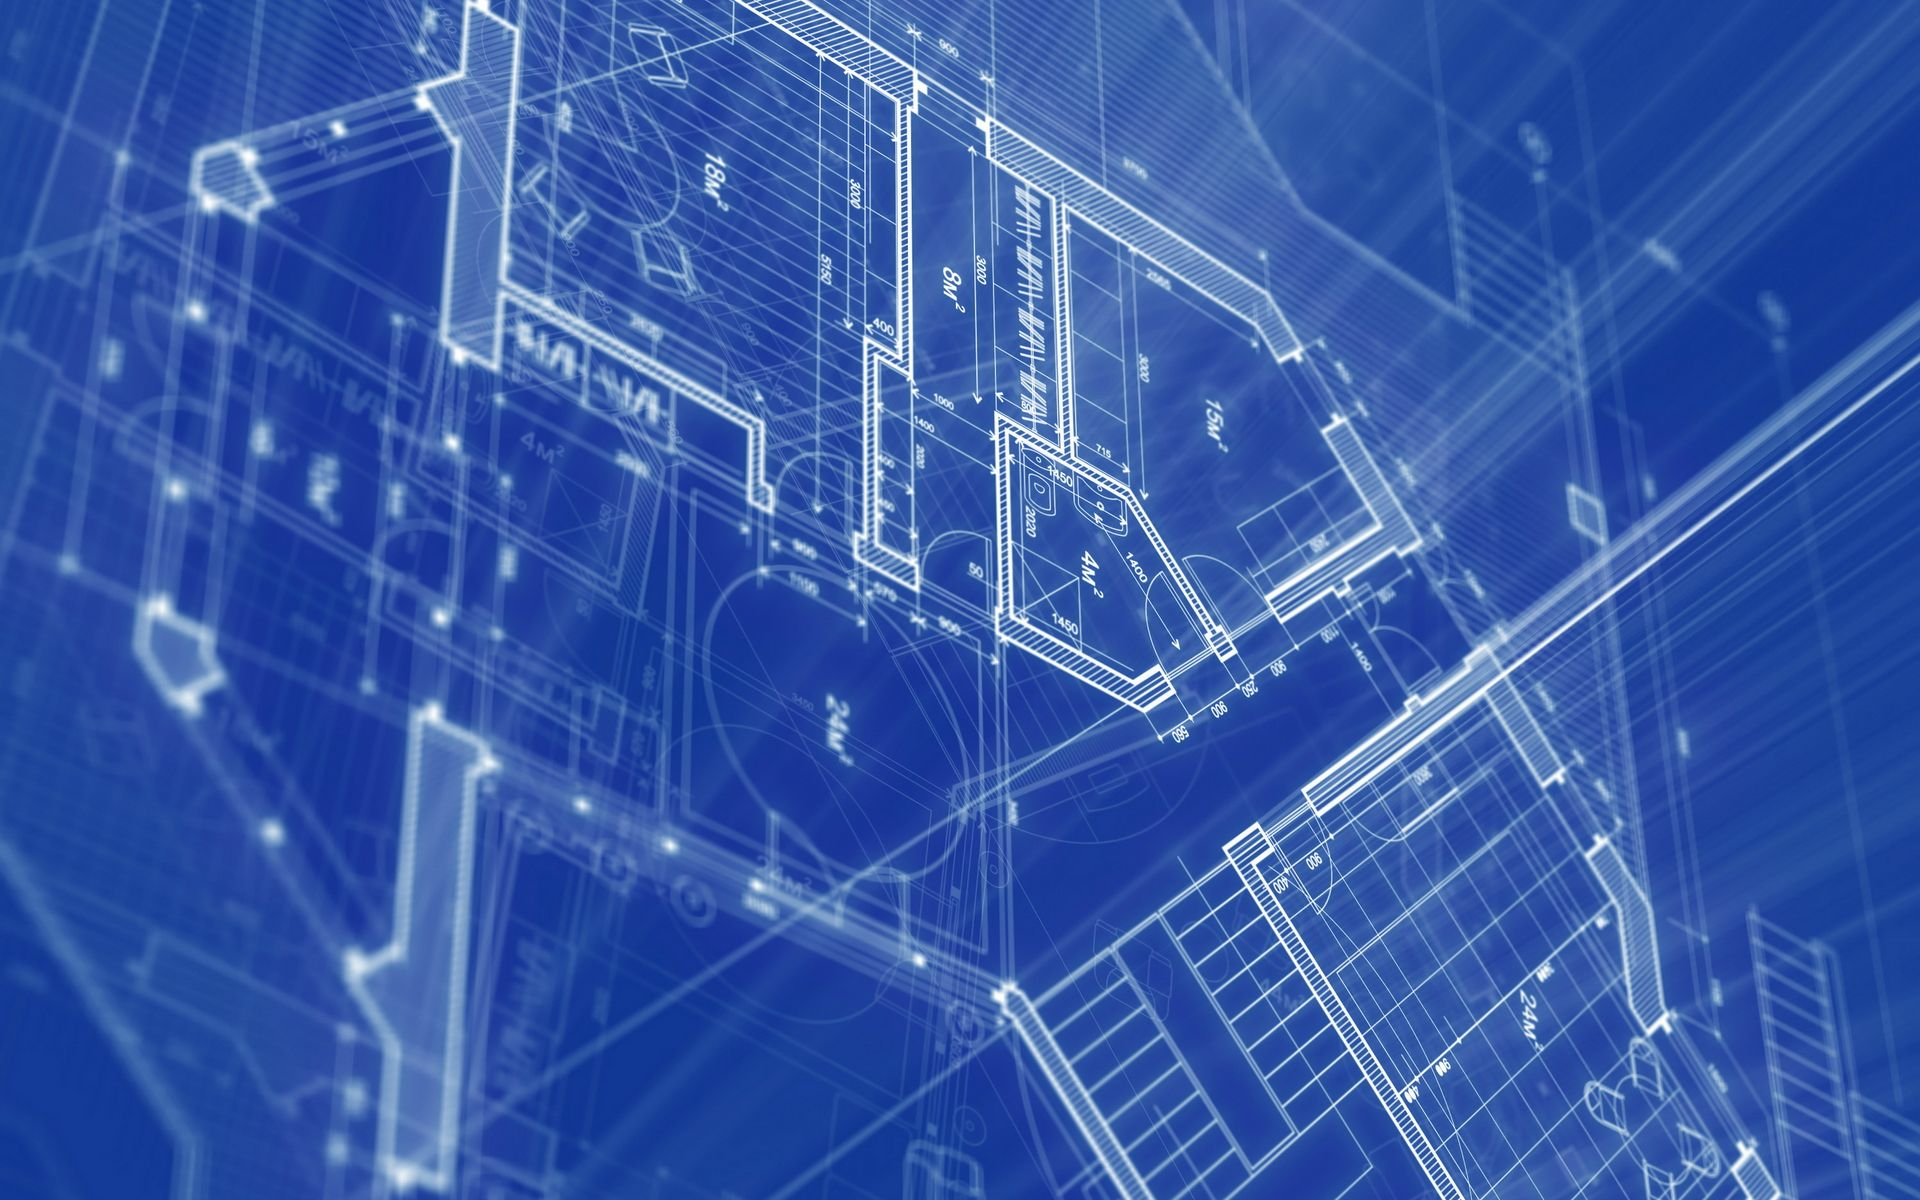 Blueprint wallpaper wallpaper animated background for Architecture blueprints